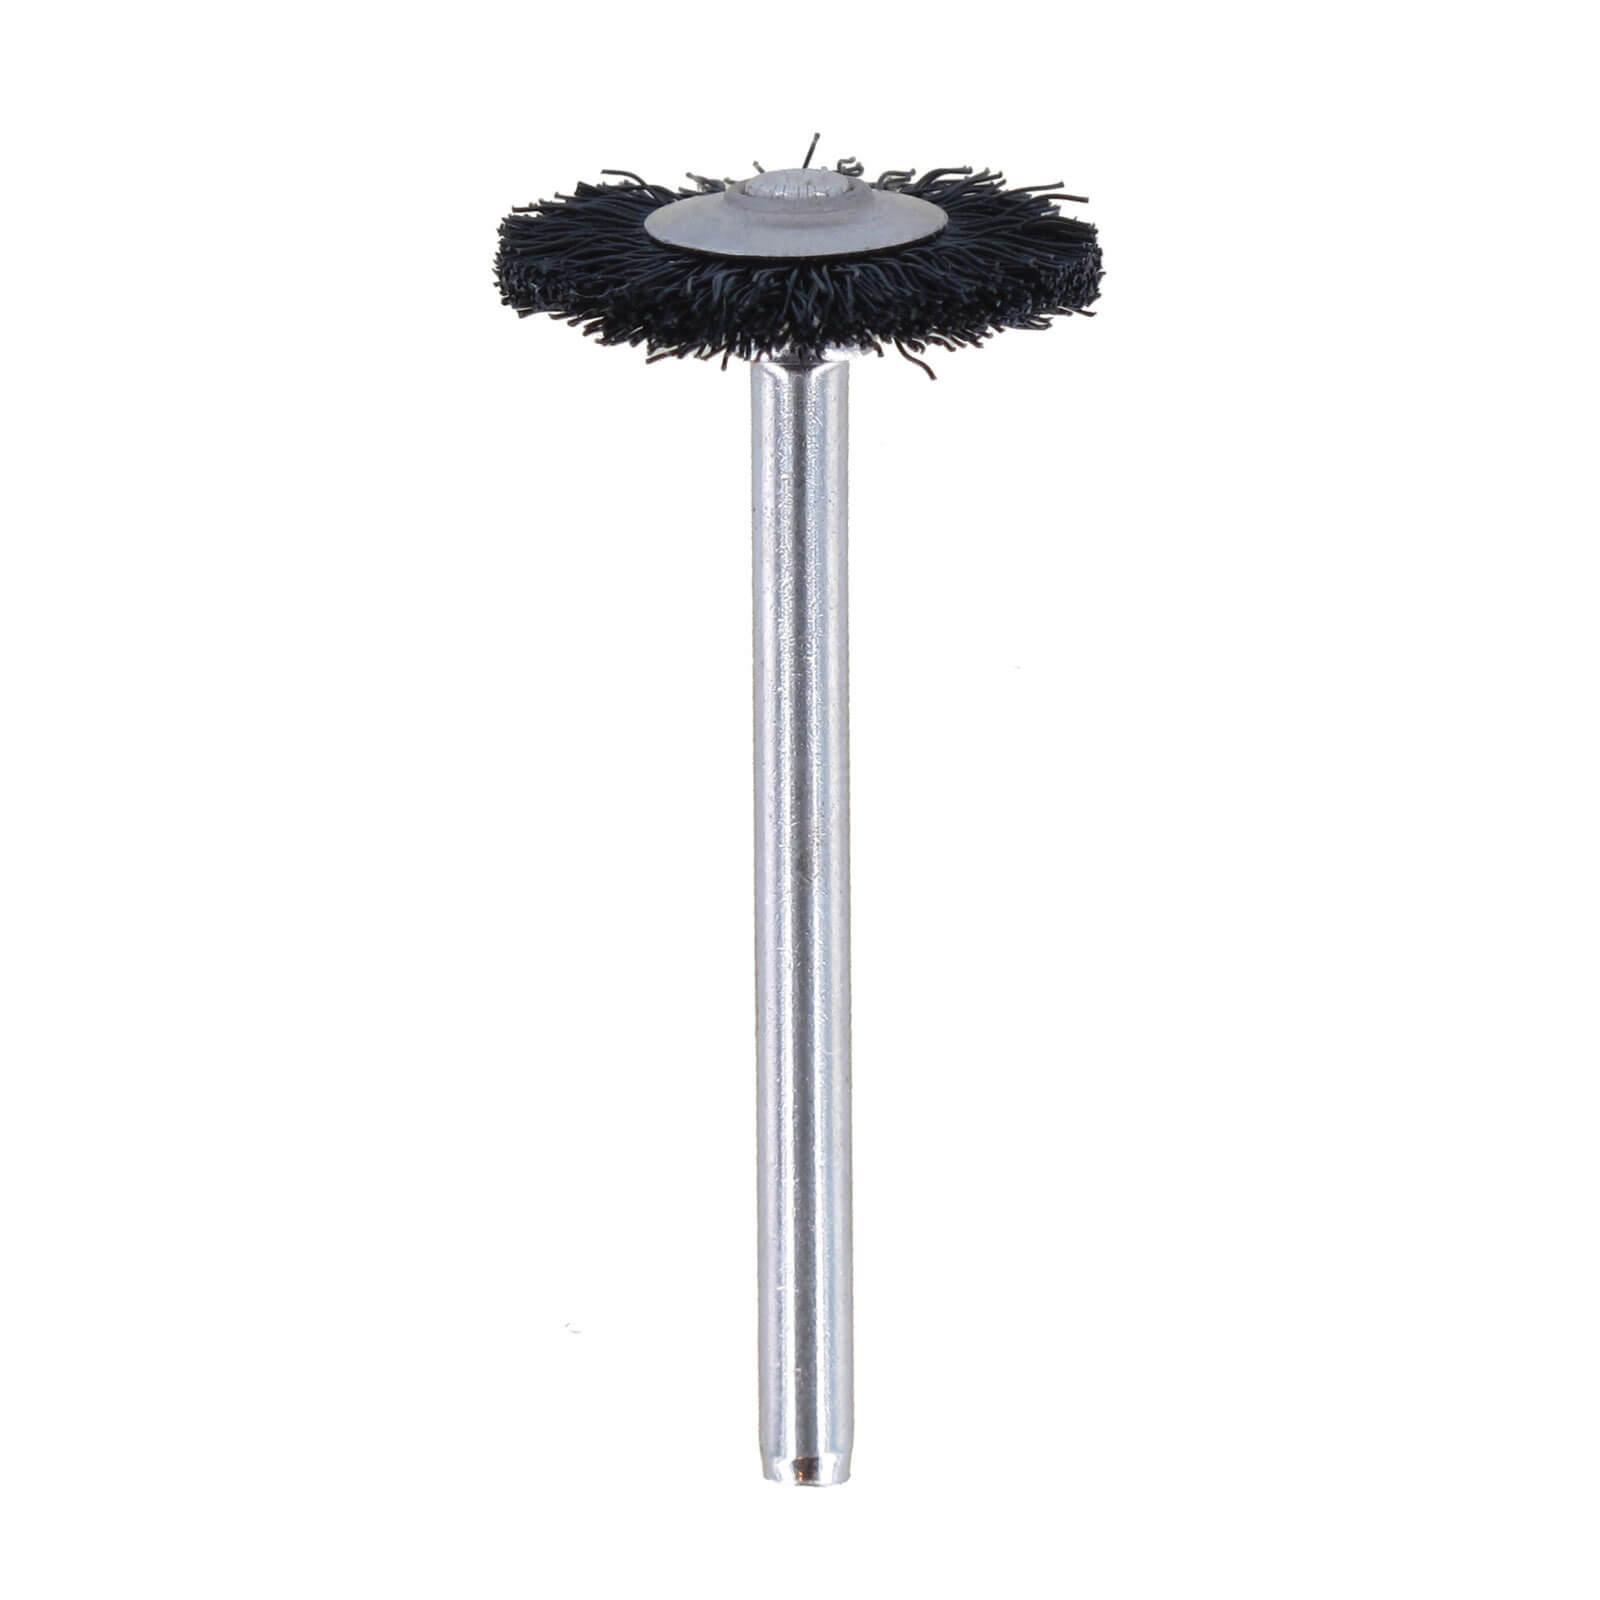 Image of Dremel 403 Bristle Wheel Brush 19mm Pack of 2